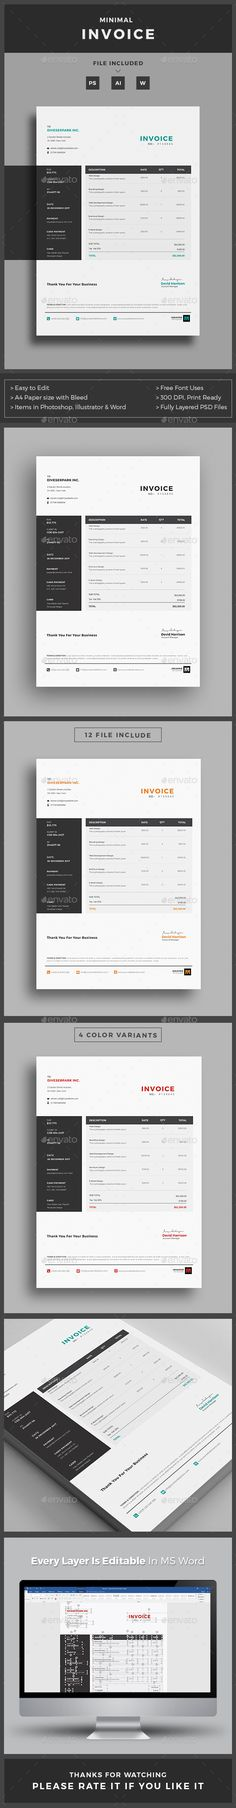 Buy Invoice by deviserpark on GraphicRiver. This Invoice will help you in your business to save time, organize you product data and customers info and easily gen. Invoice Design Template, Presentation Design Template, Stationery Templates, Stationery Design, Print Templates, Brochure Template, Business Templates, Layout